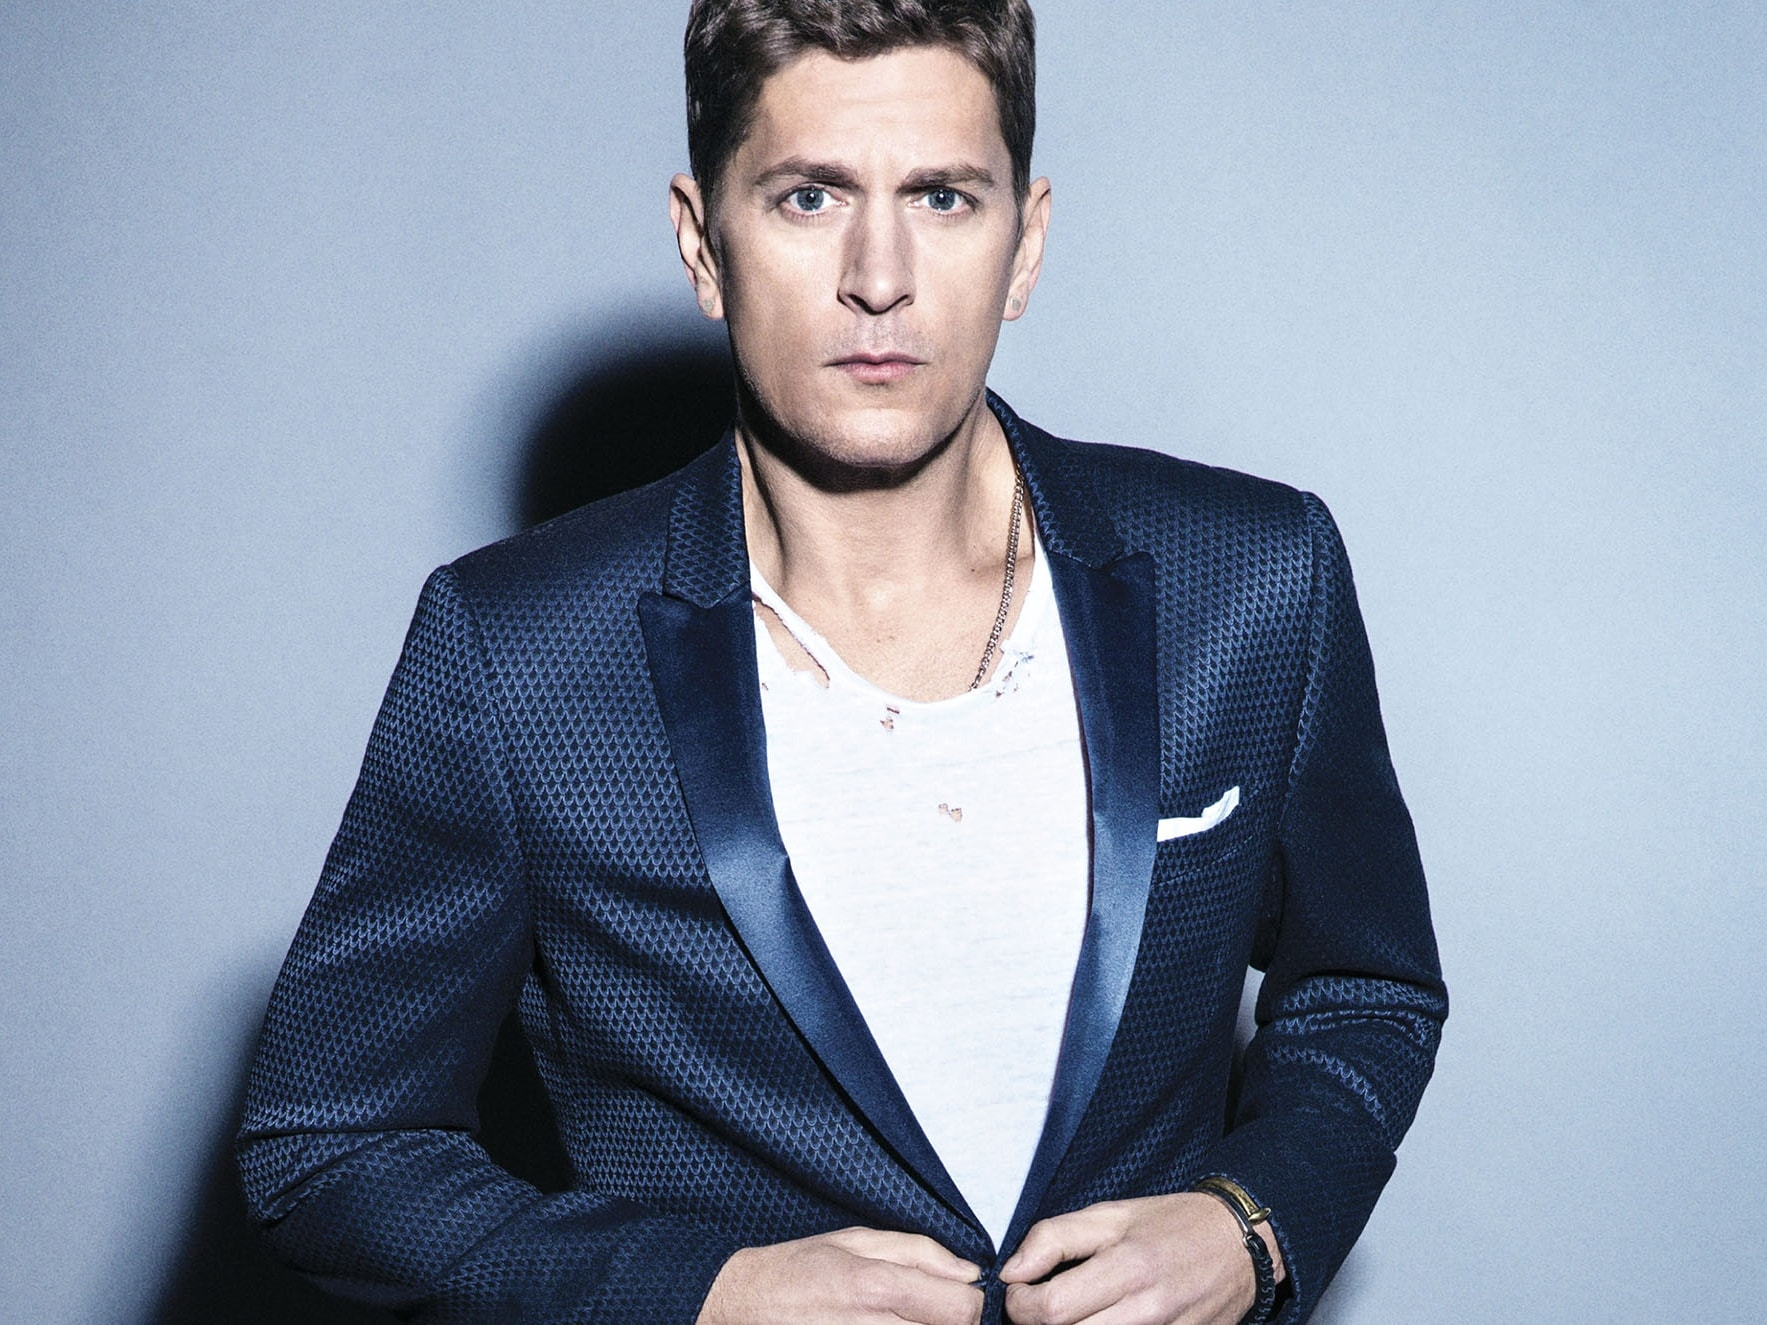 rob thomas Robert james rob thomas (born august 15, 1965) is an american author, producer, director and screenwriter he is best known for creating the acclaimed television series veronica mars (2004–2007), and co-creating 90210 (2008–2013), party down (2009–2010), and izombie (2015–present.